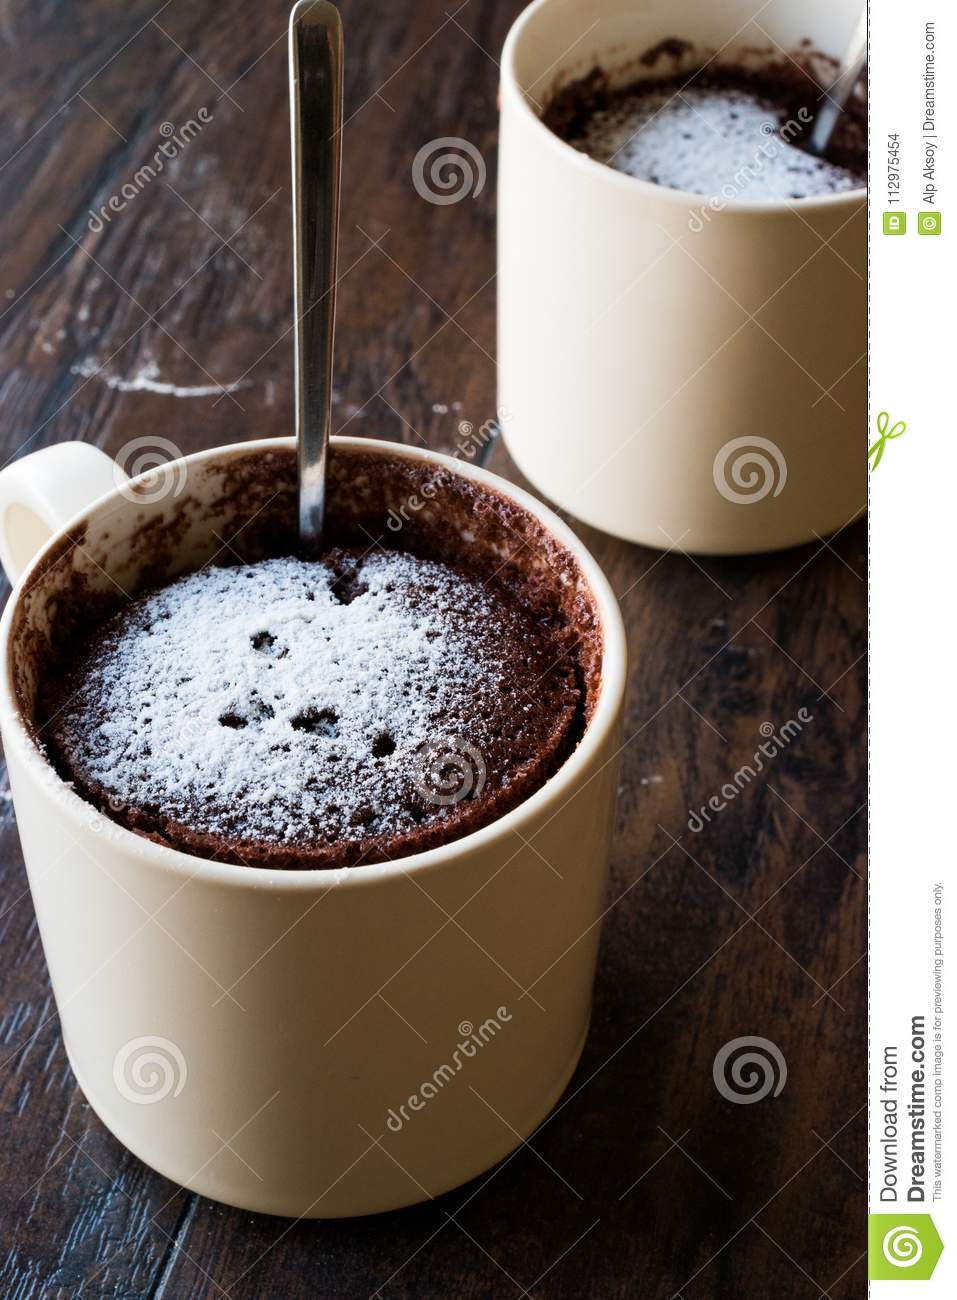 Microwave Brownie Chocolate Mug Cake with Powder Sugar on Dark Wooden Surface.